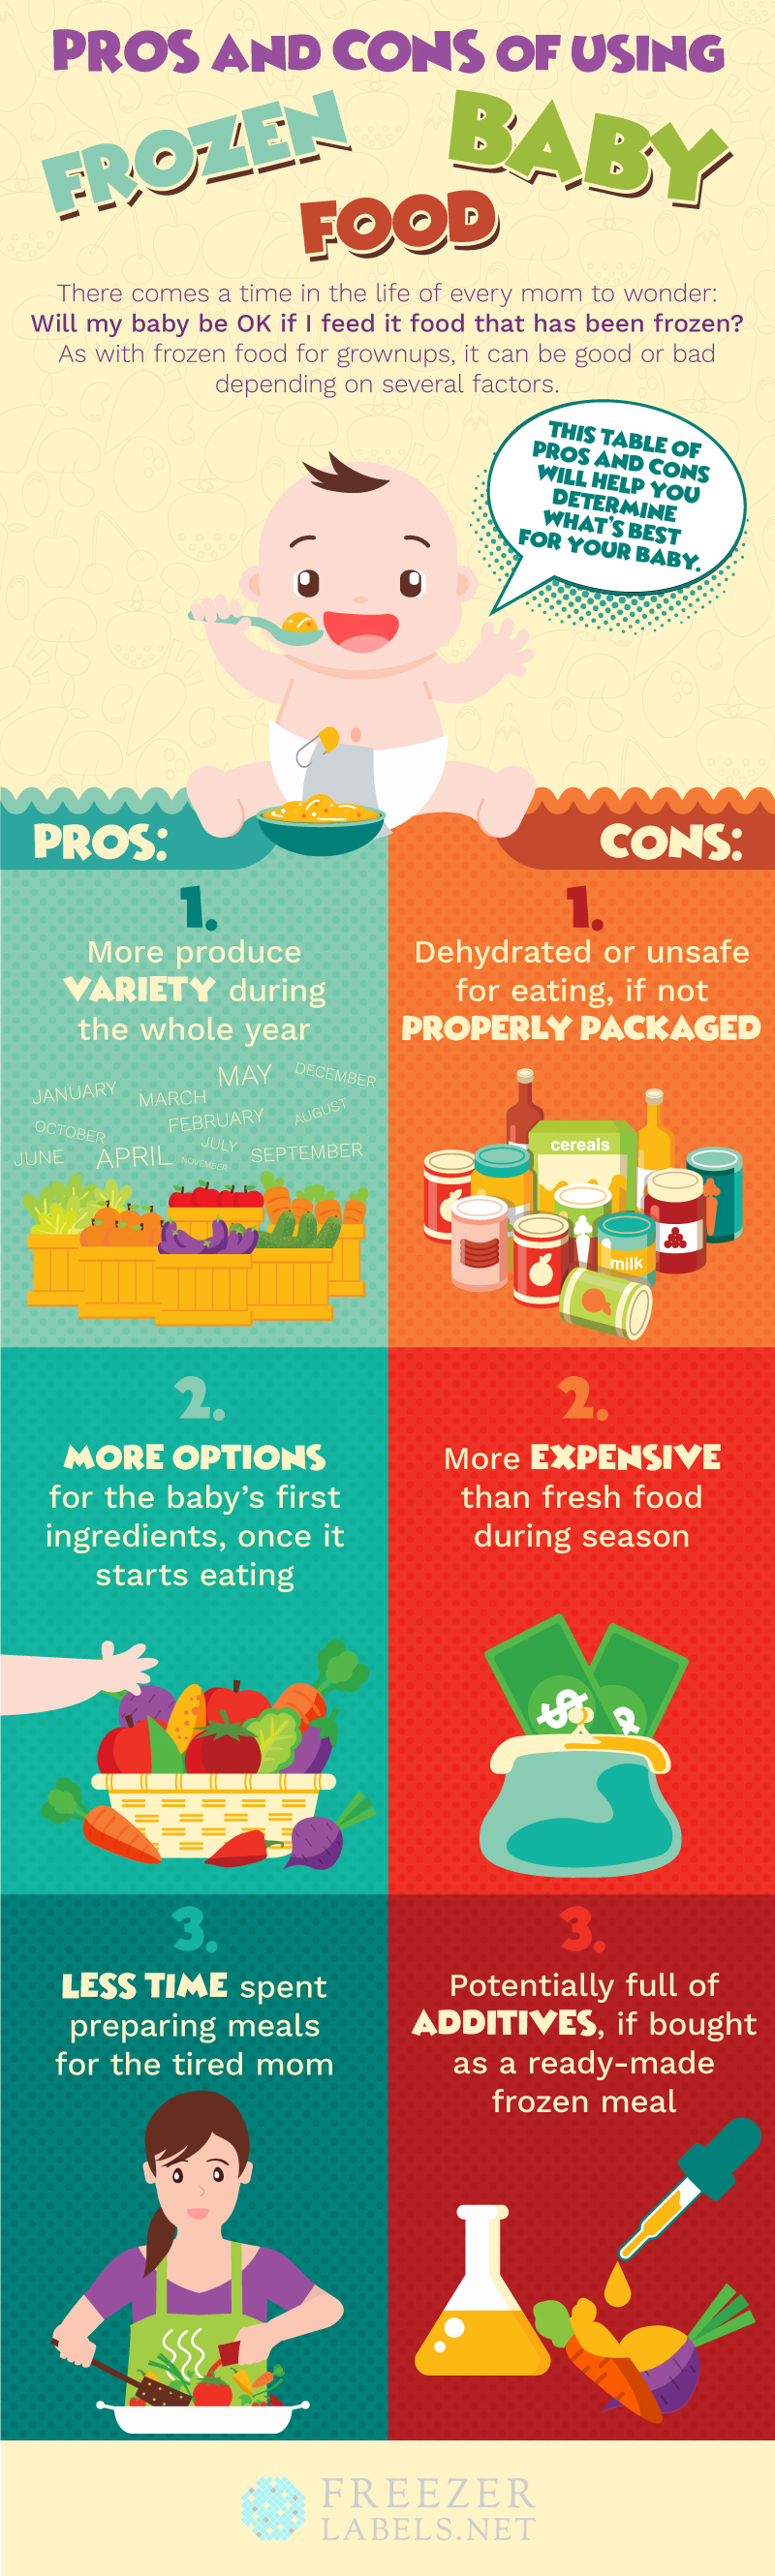 pros and cons of using frozen baby food infographic